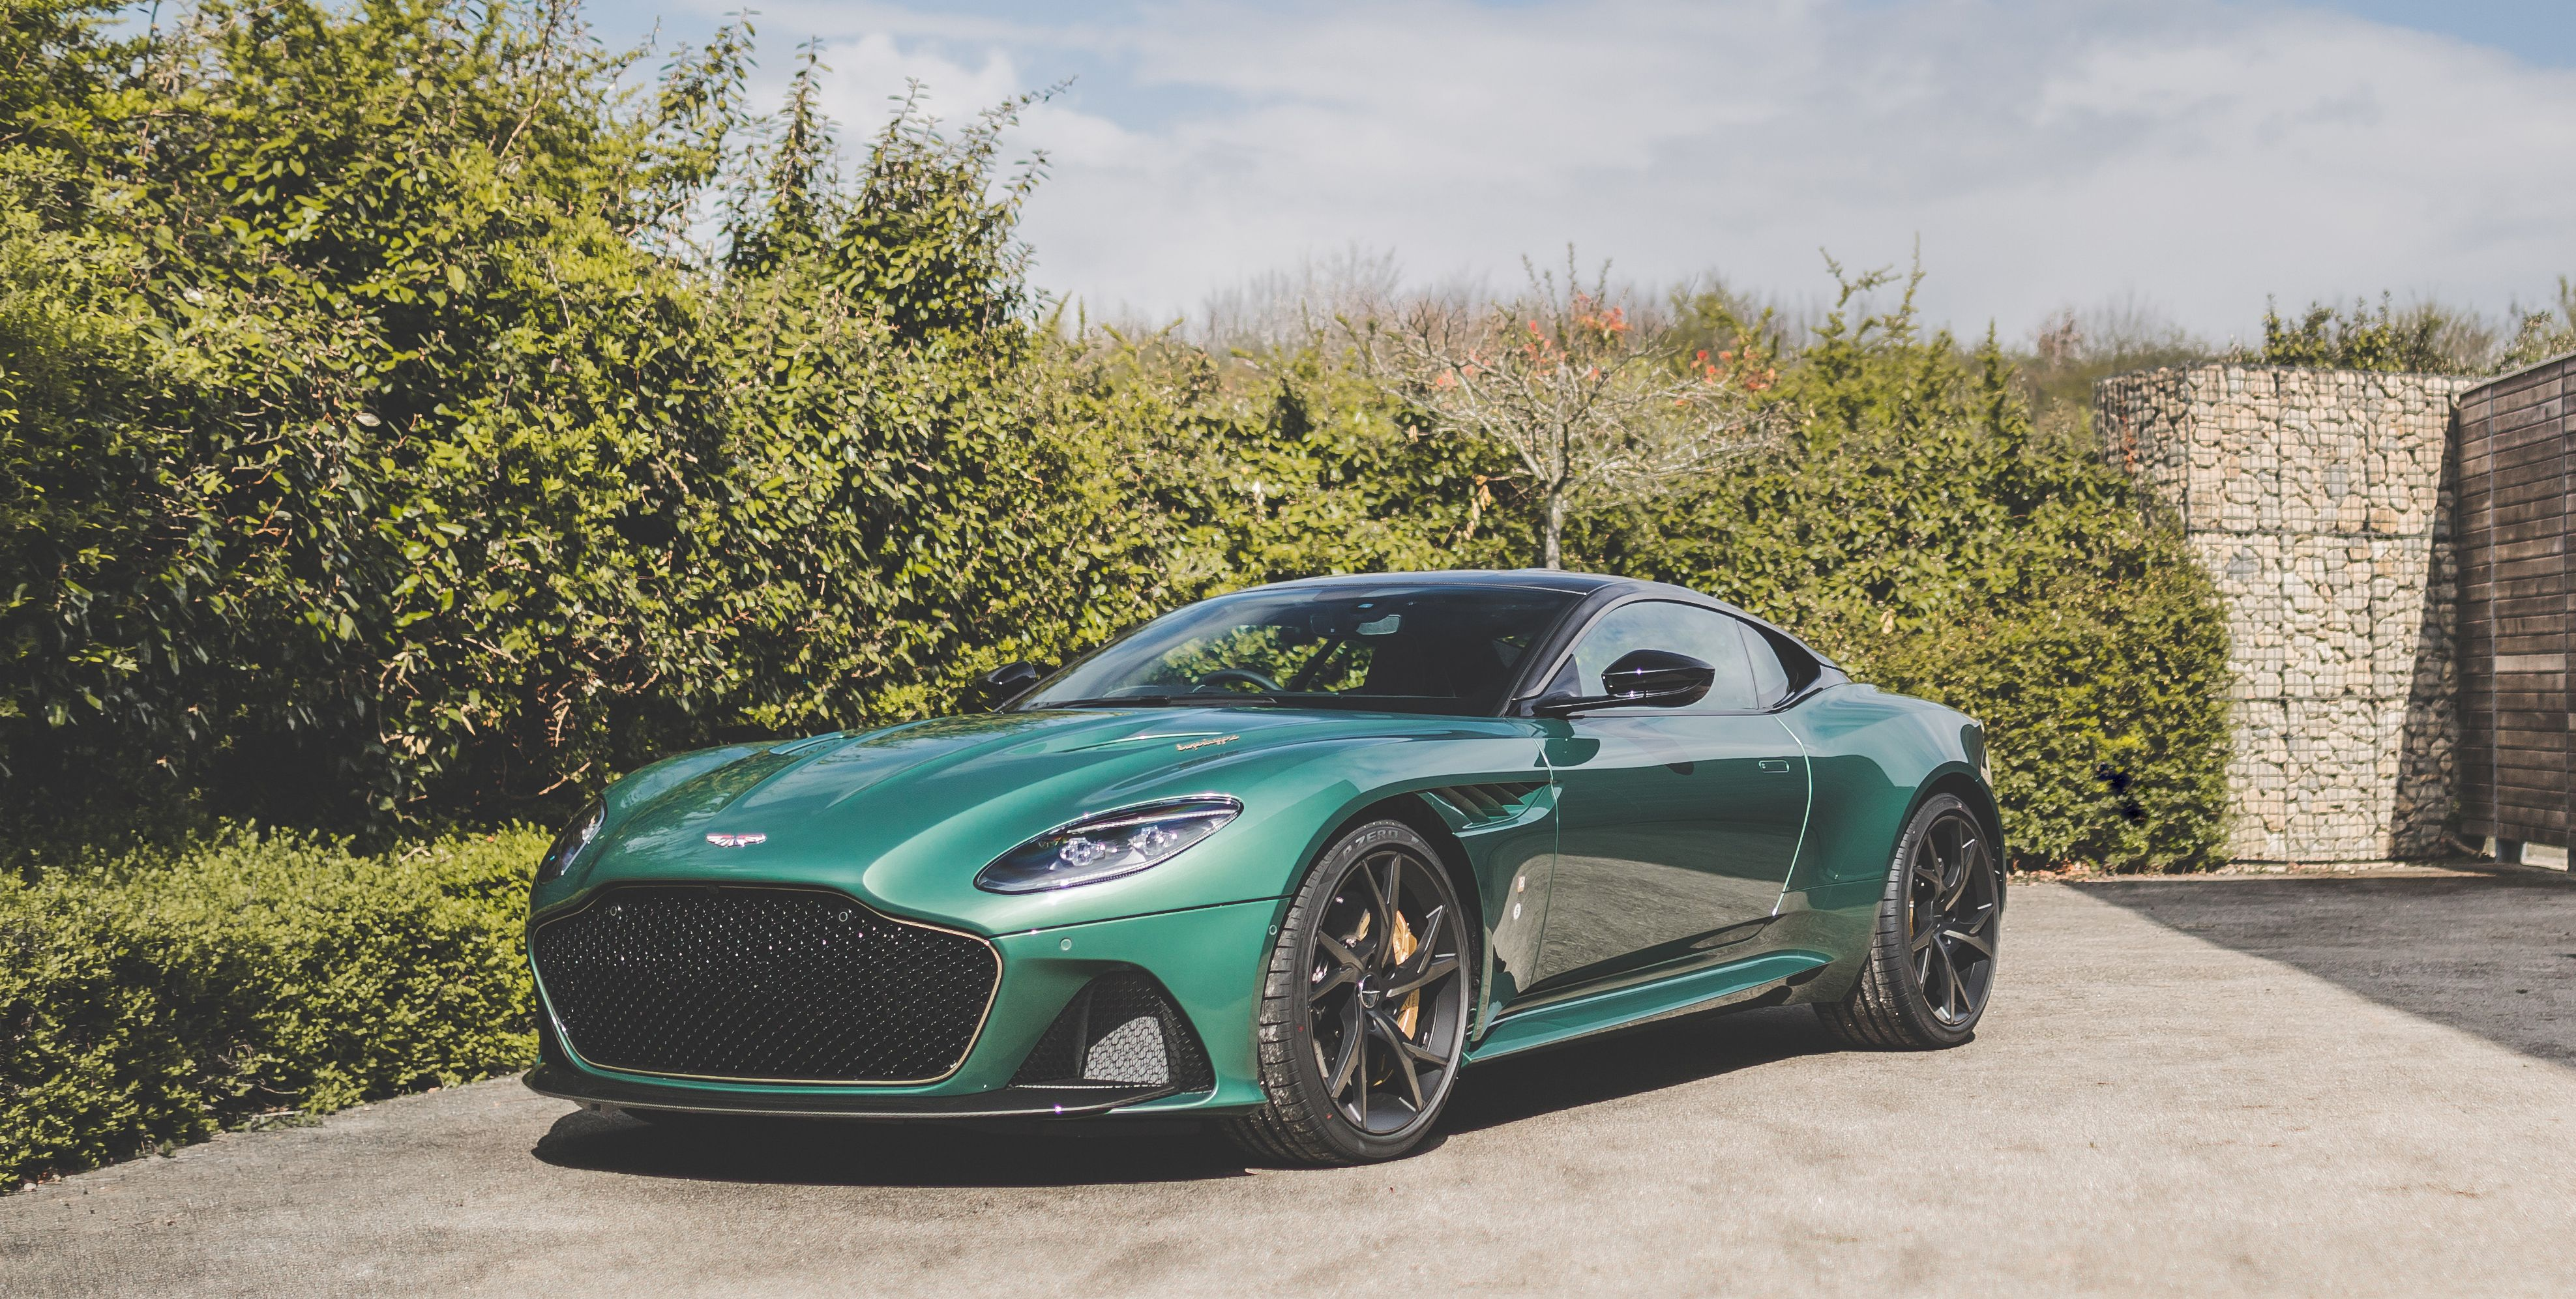 Aston Martin Creates DBS 59 Special Edition to Commemorate 1959 Le Mans Victory